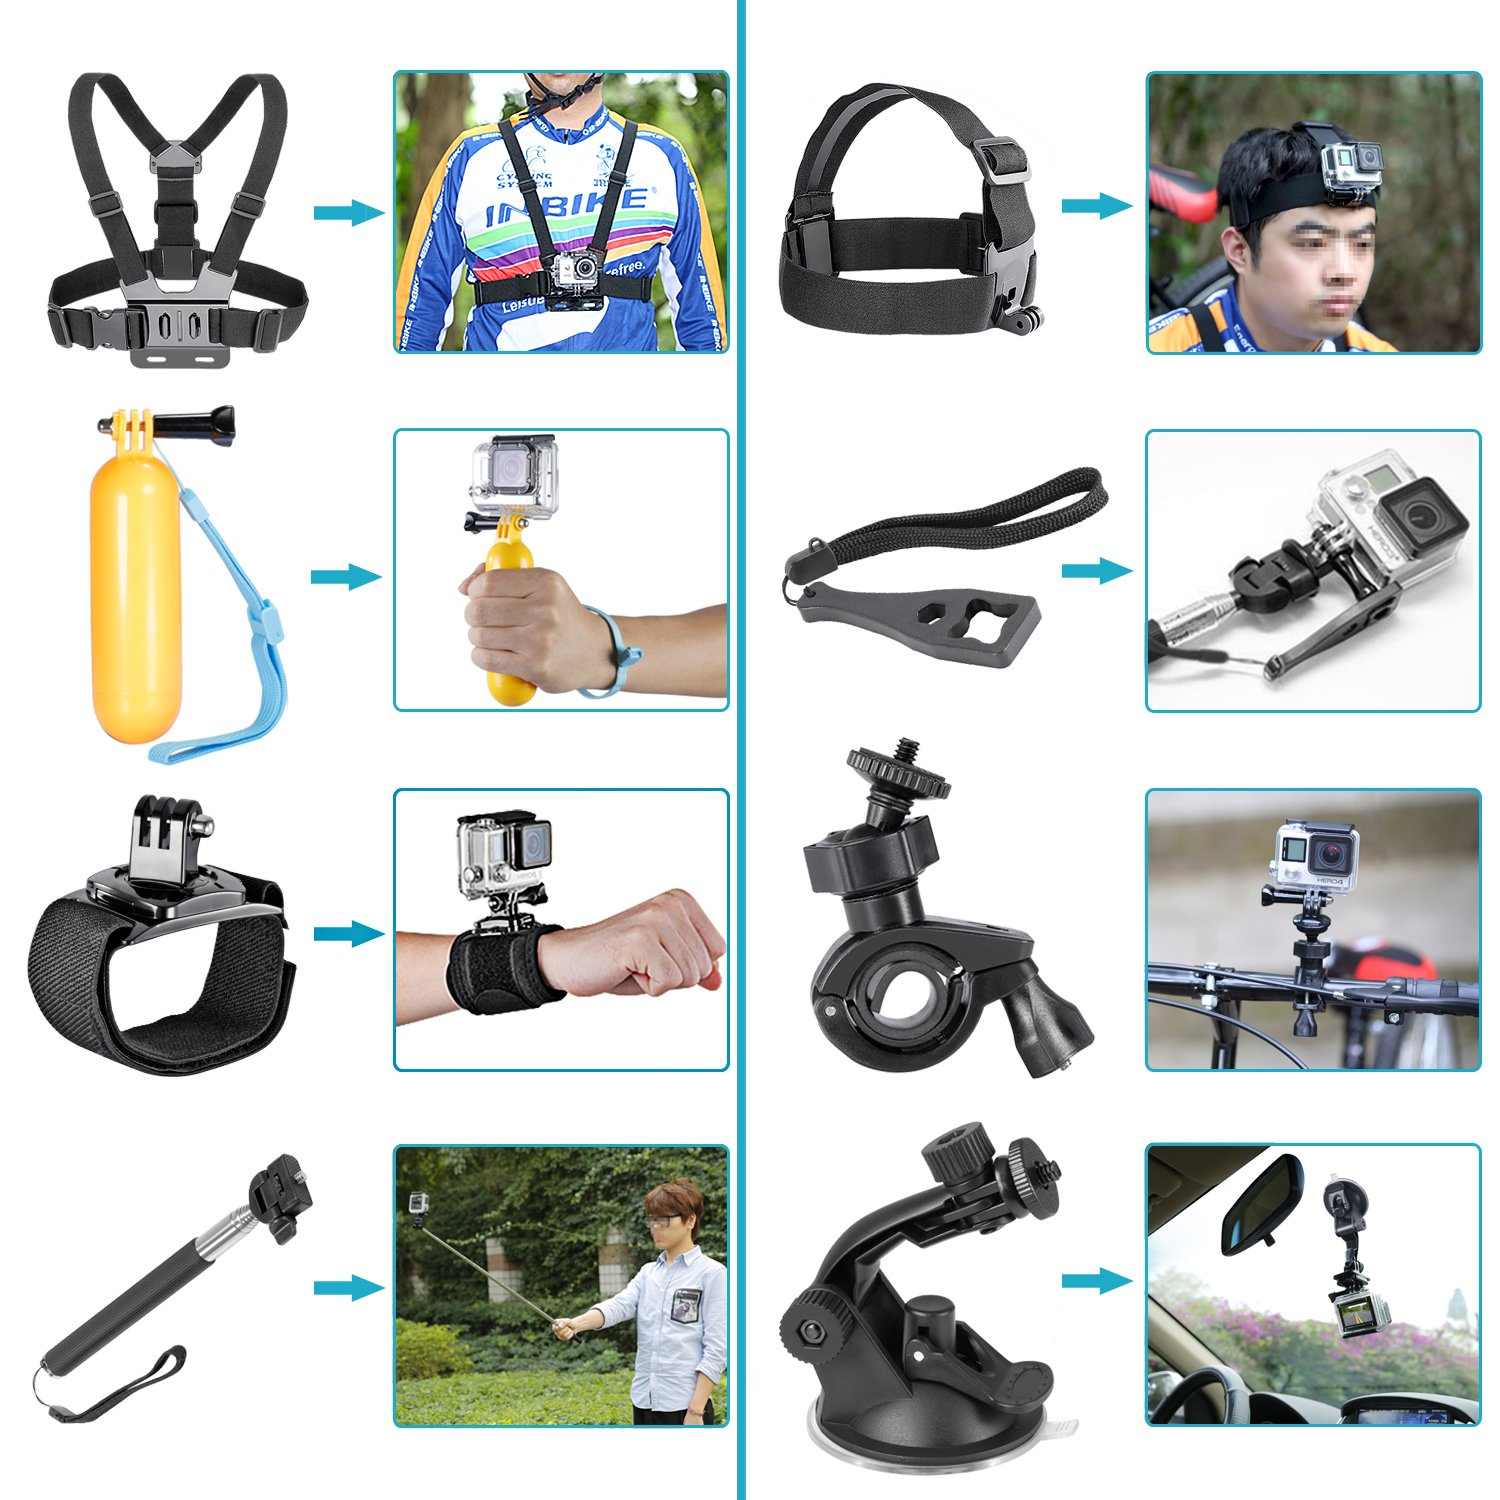 Neewer 12-In-1 Action Camera Accessory Kit for GoPro Hero Session/5 Hero 1 2 3 3+ 4 5 6 SJ4000 5000 6000 DBPOWER AKASO VicTsing APEMAN WiMiUS Rollei QUMOX Lightdow Campark and Sony Sports DV and More